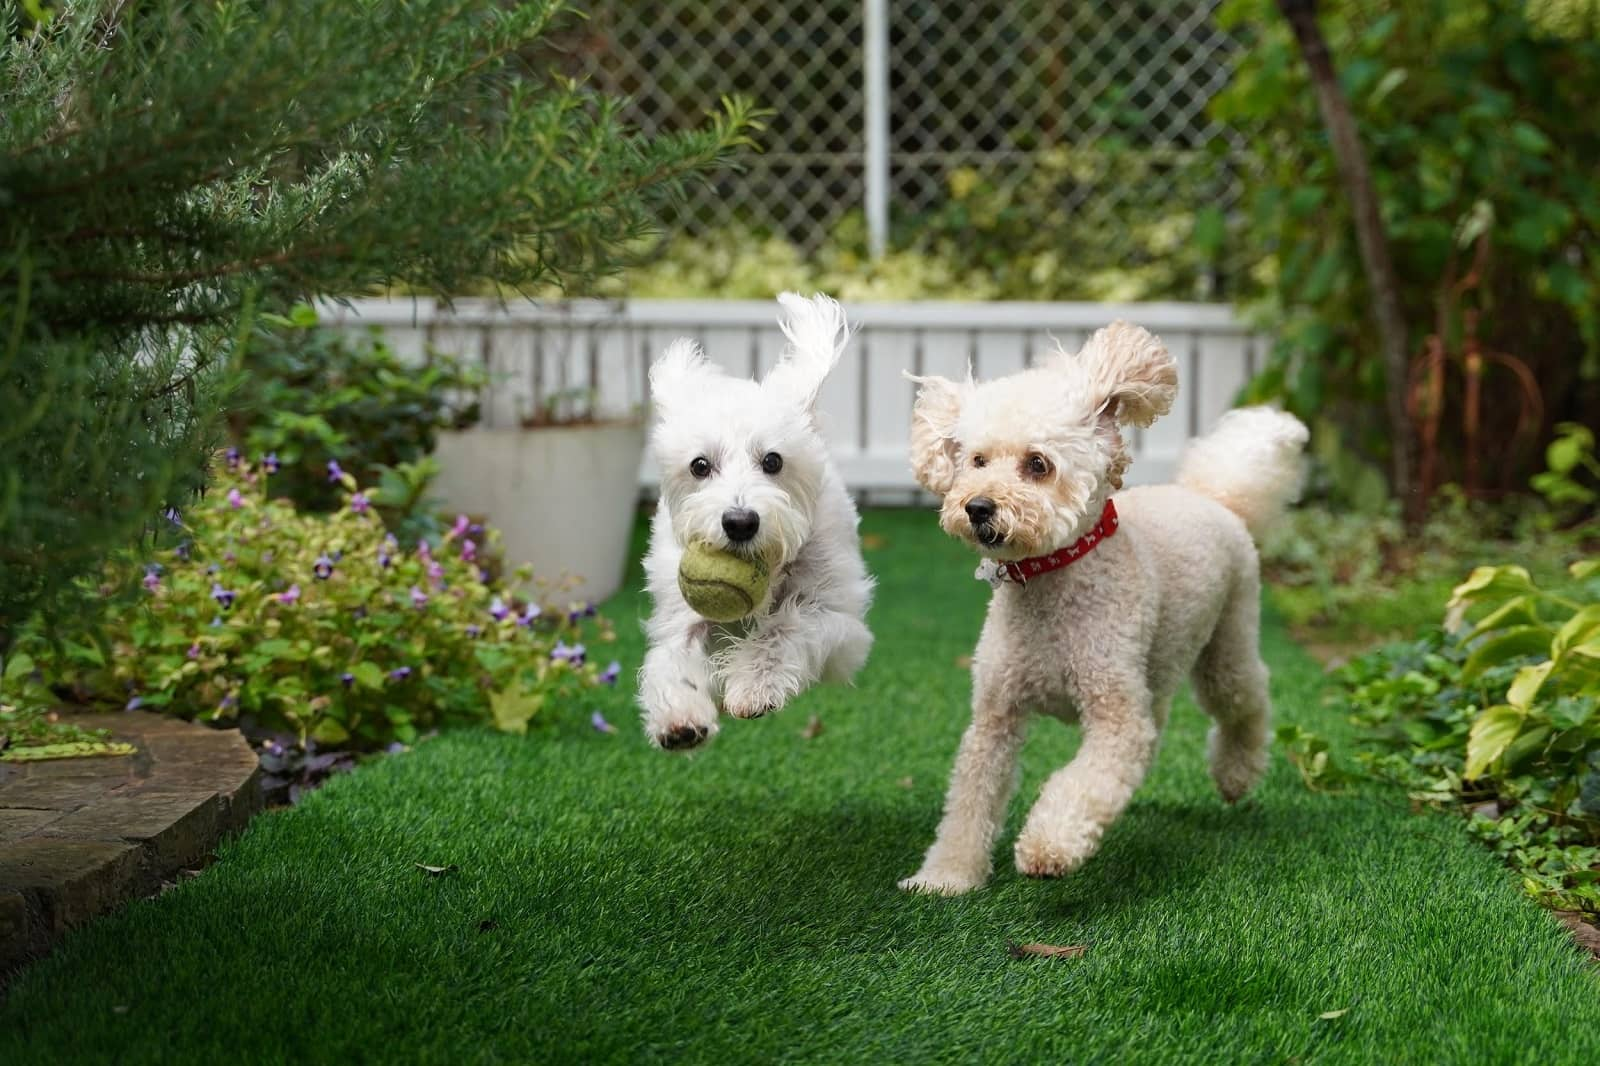 Landscaping for Pets: How to Make a Pet-Friendly Yard. Two poodles playing with tennis ball